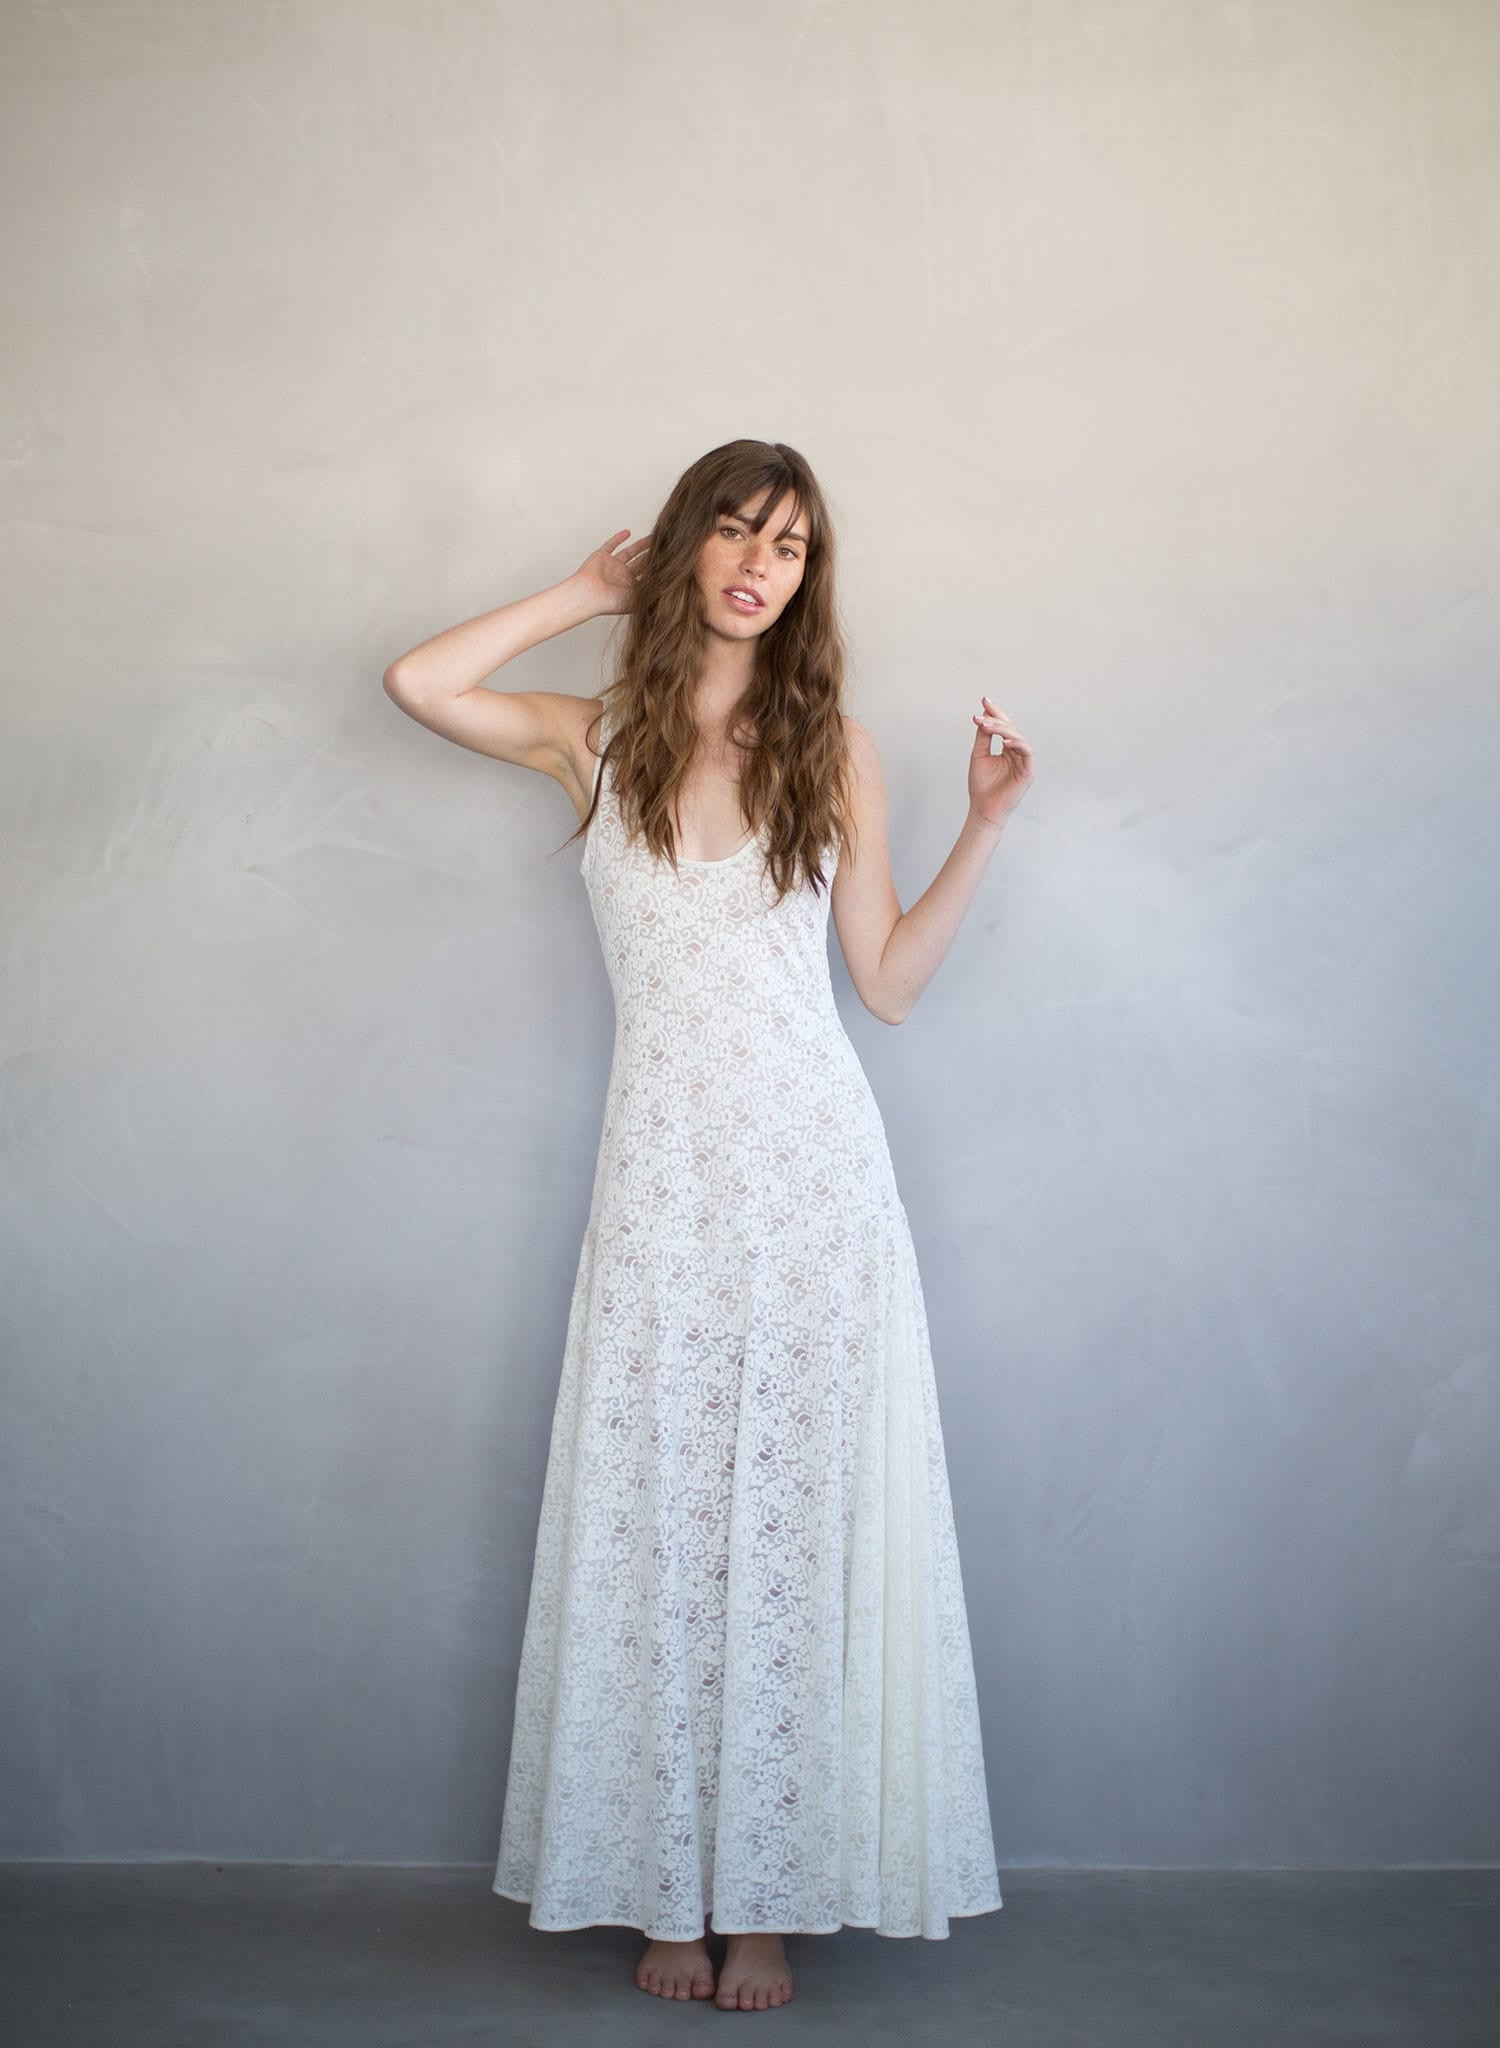 official store arrives differently Meringue - Lace slip dress, beach wedding, lingerie -TH707 | Twigs ...